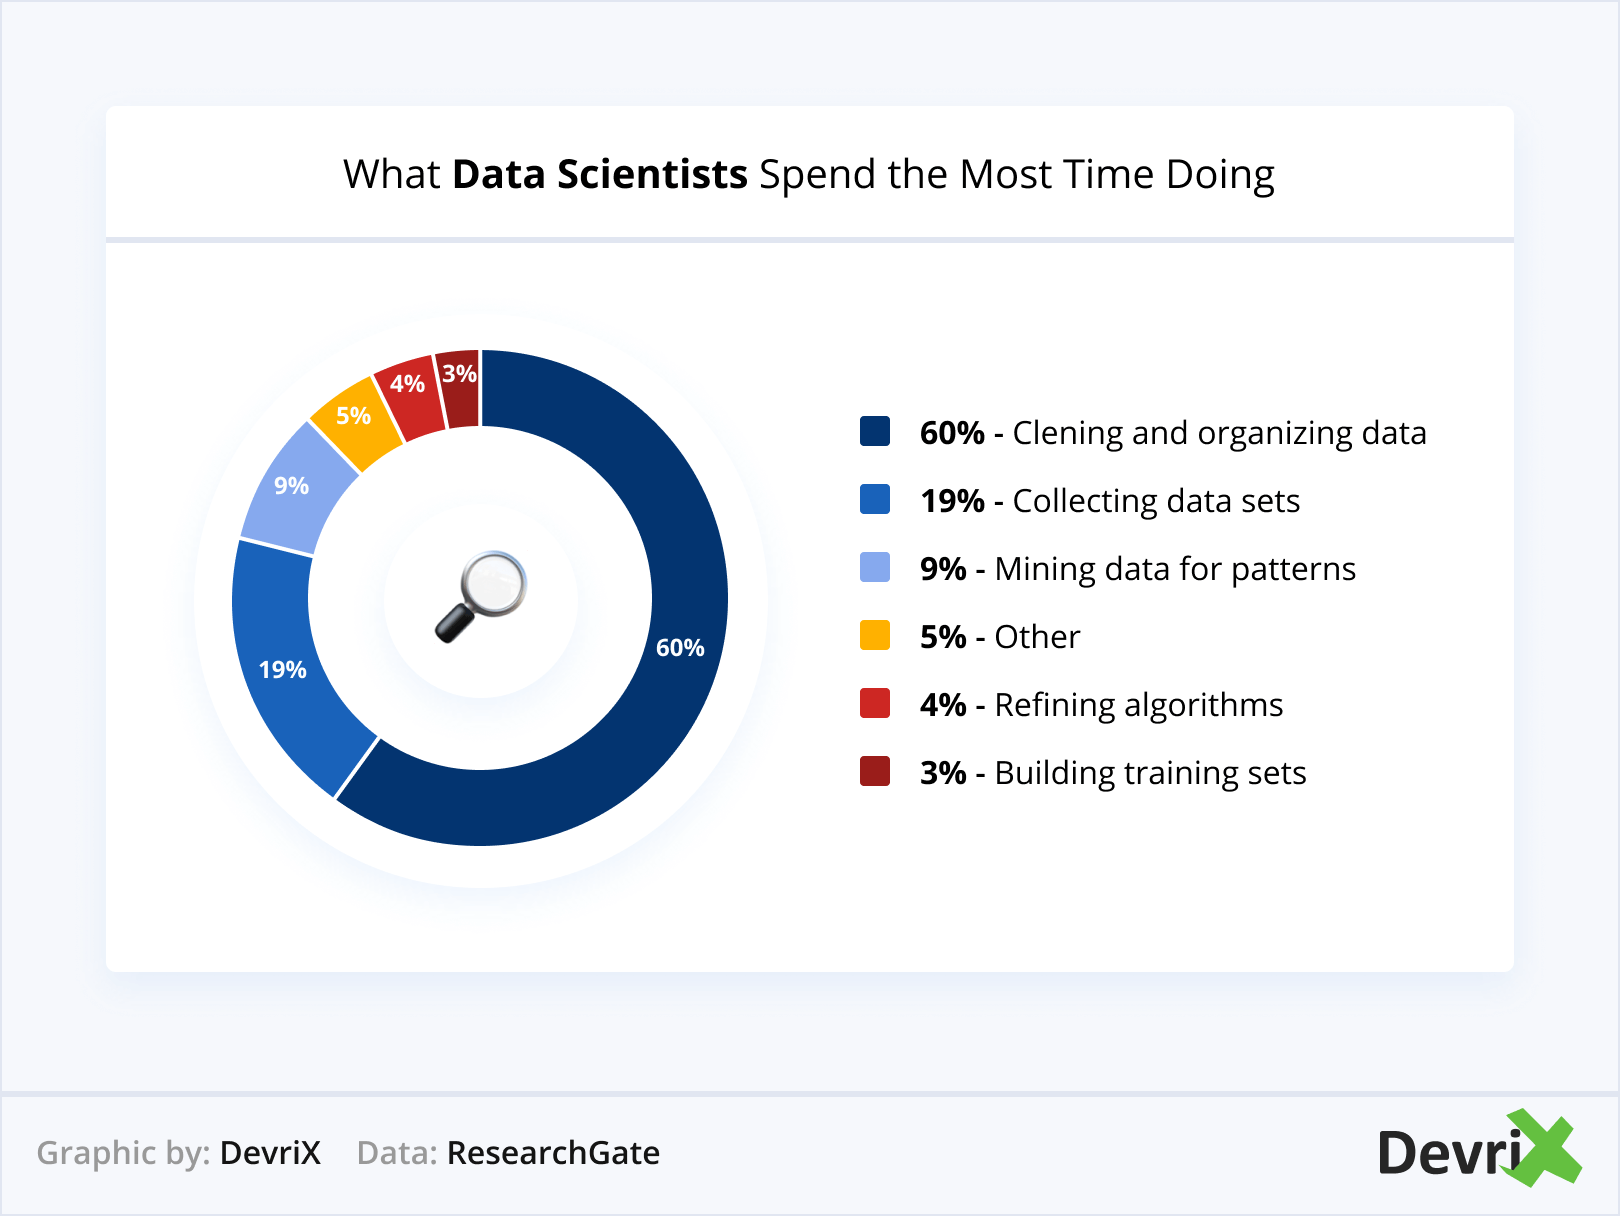 What Data Scientists Spend the Most Time Doing